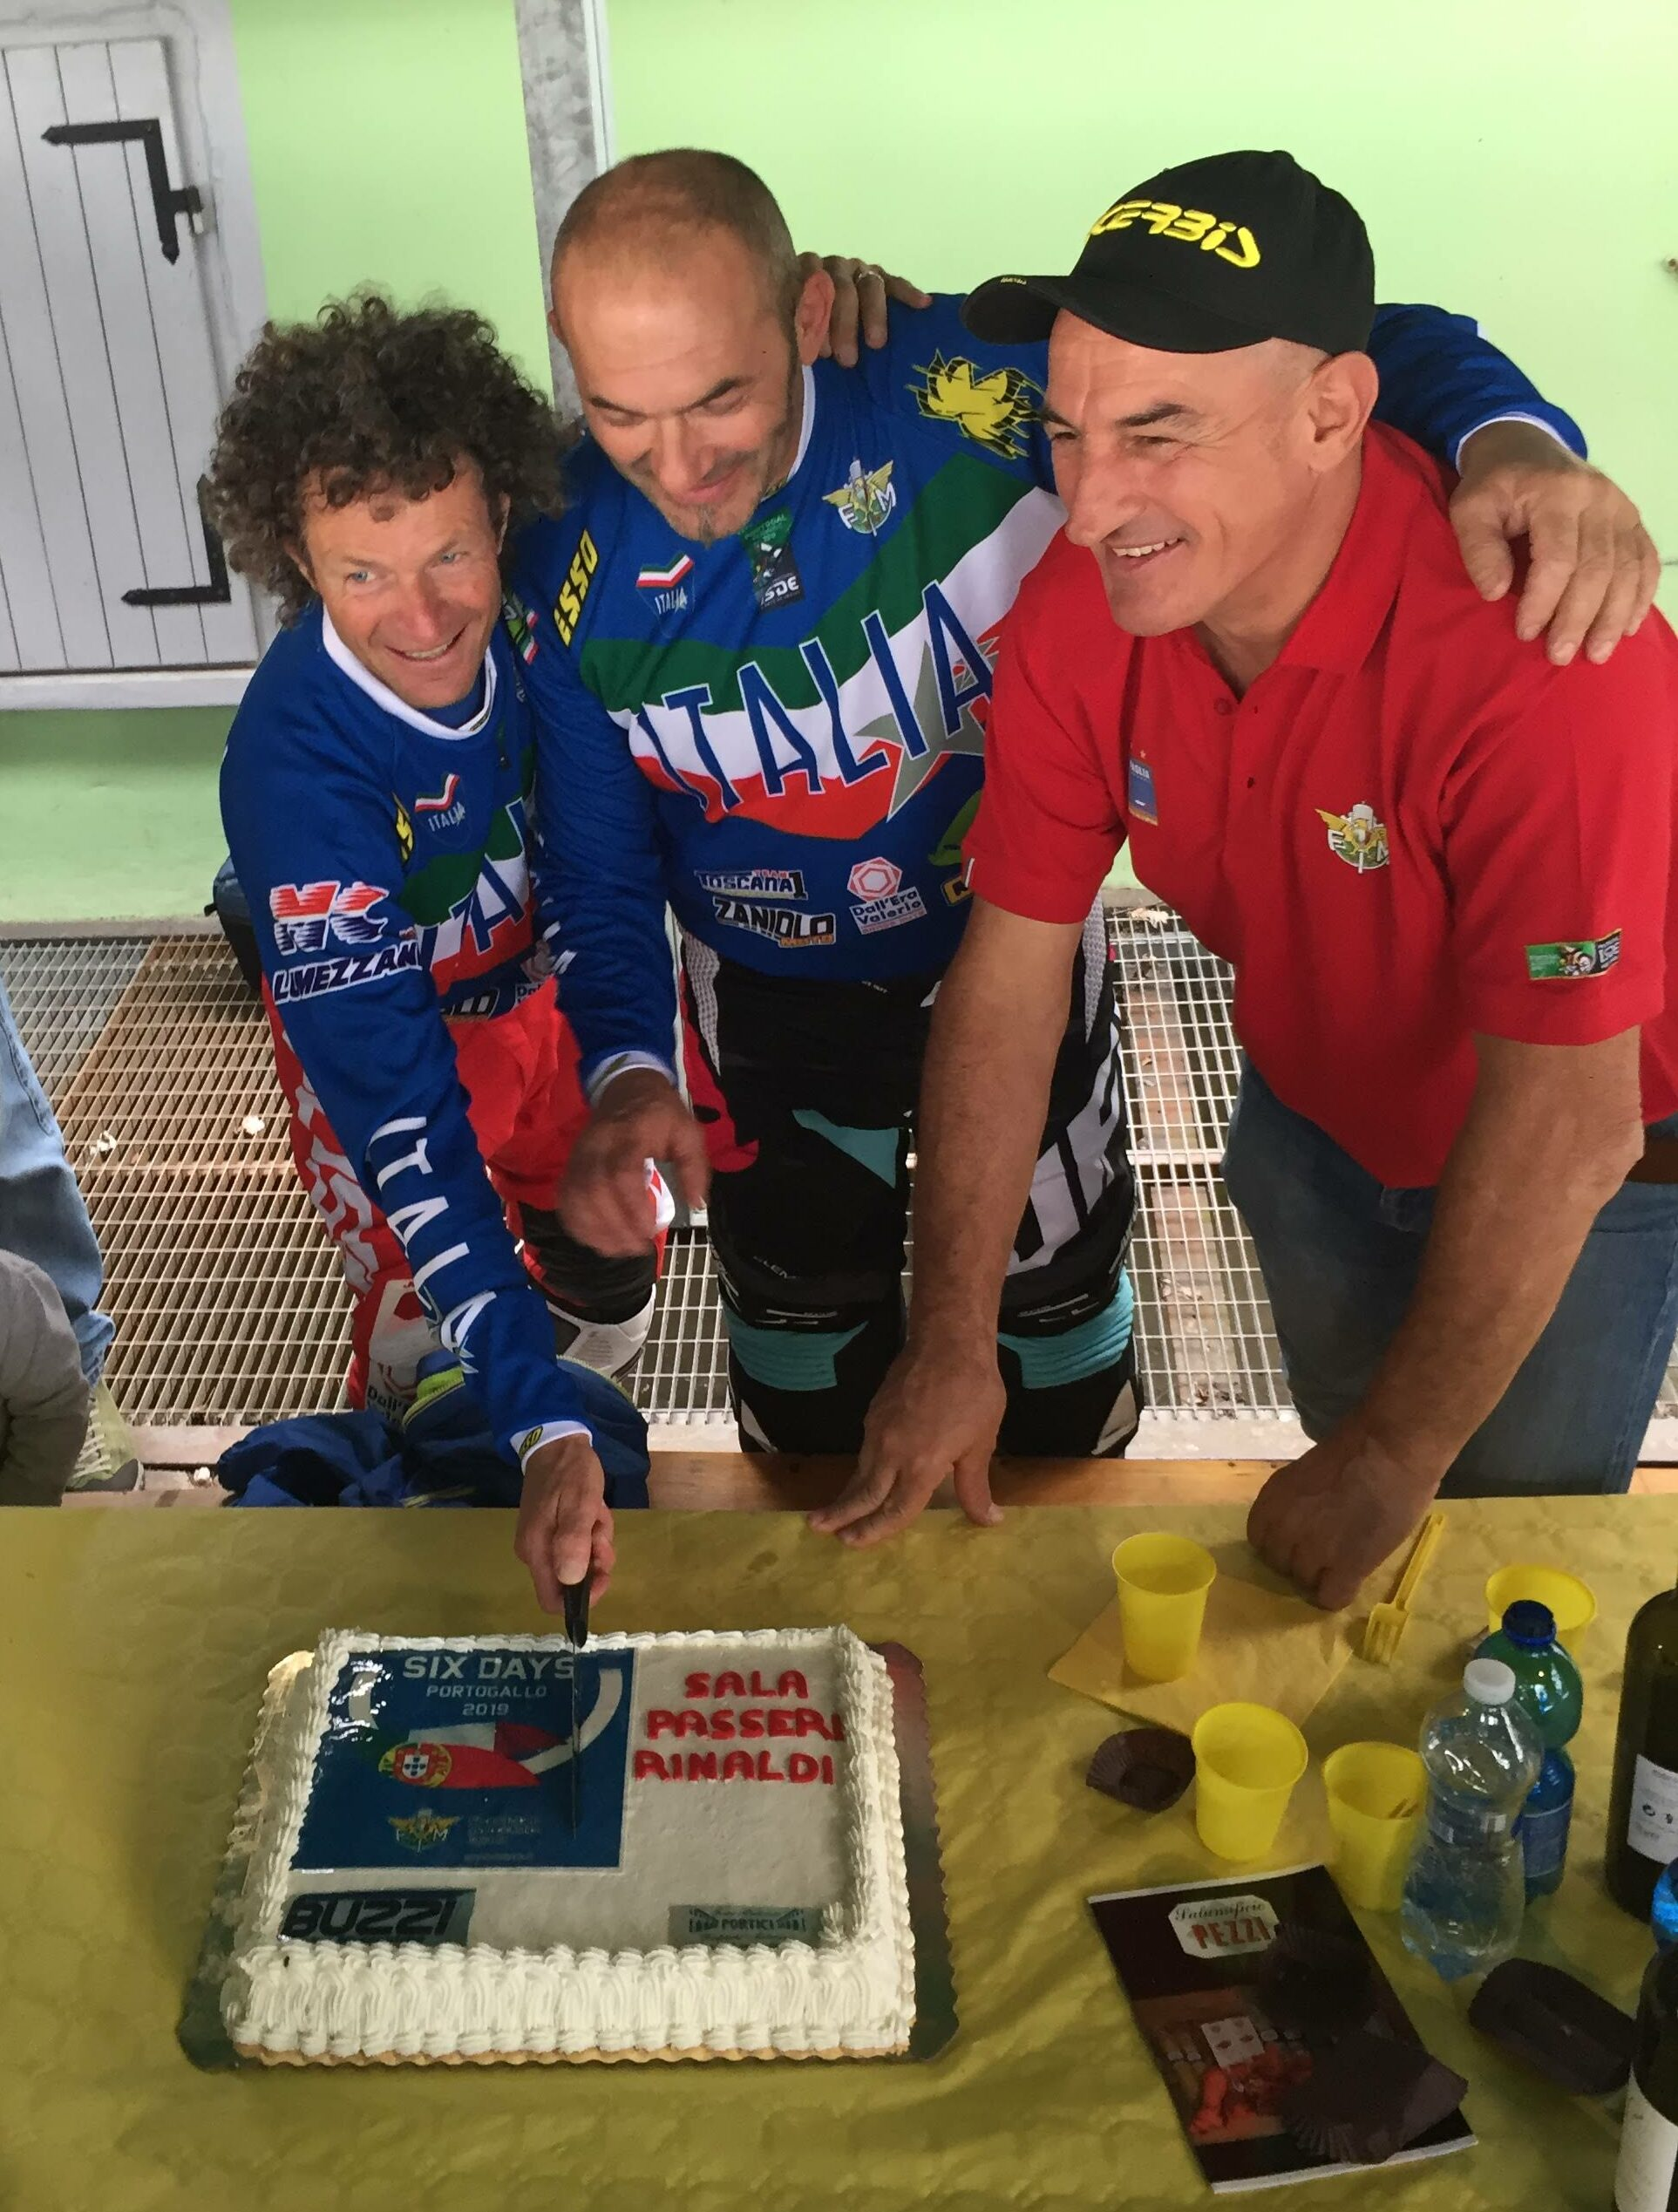 italiainpiega-evento-dream team veterans-taglio torta